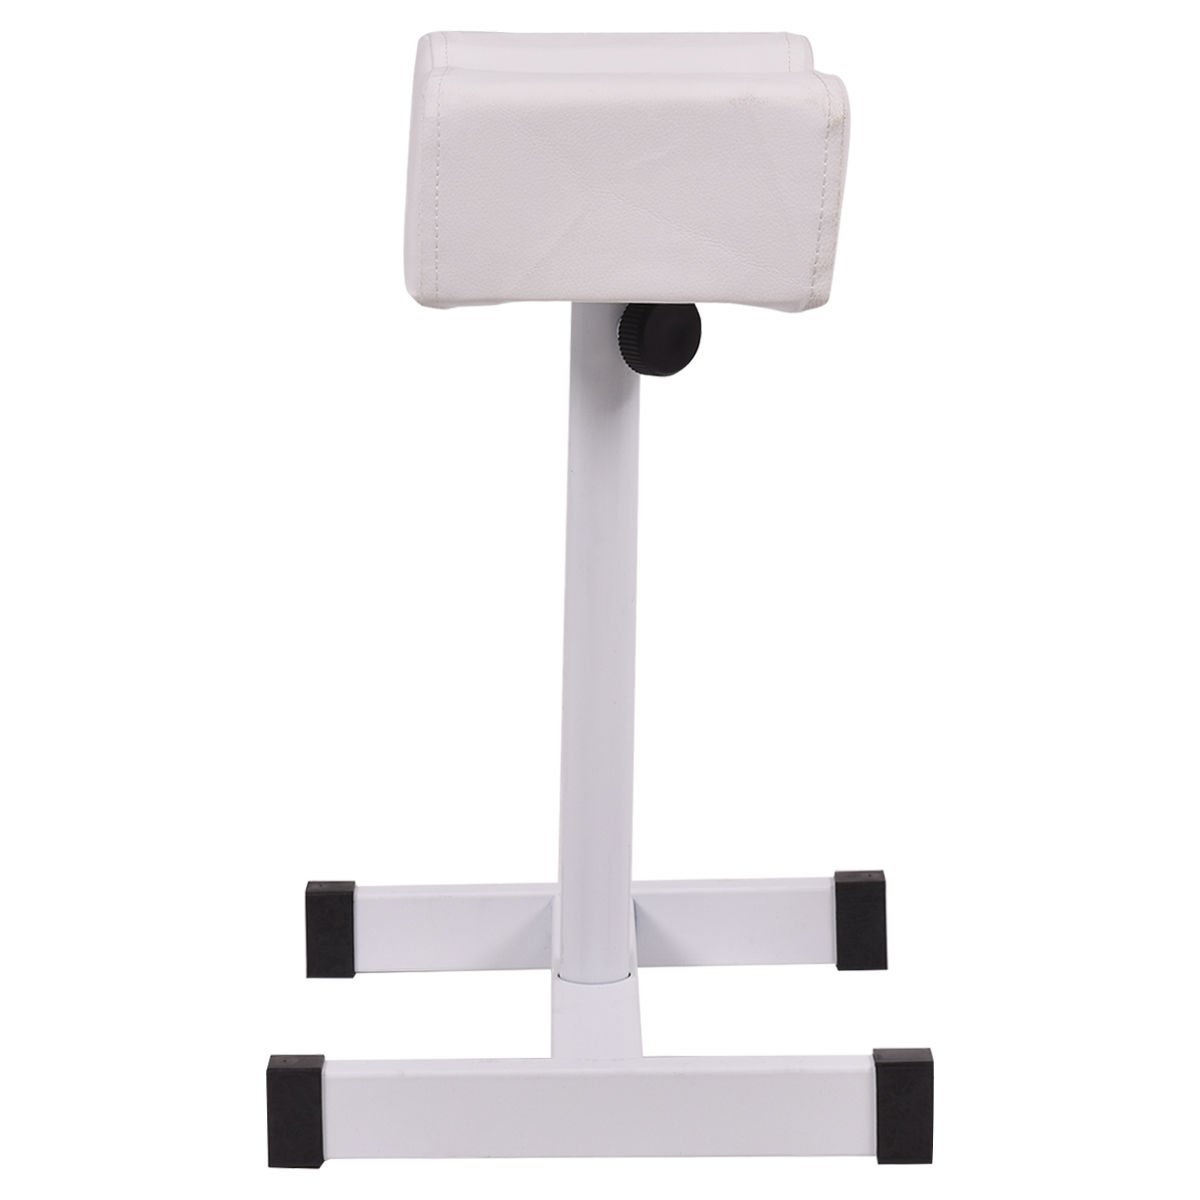 Simply Silver - Adjustable Pedicure - White Adjustable Pedicure Manicure Technician Nail Footrest Salon Spa Equipment by Simply Silver (Image #4)